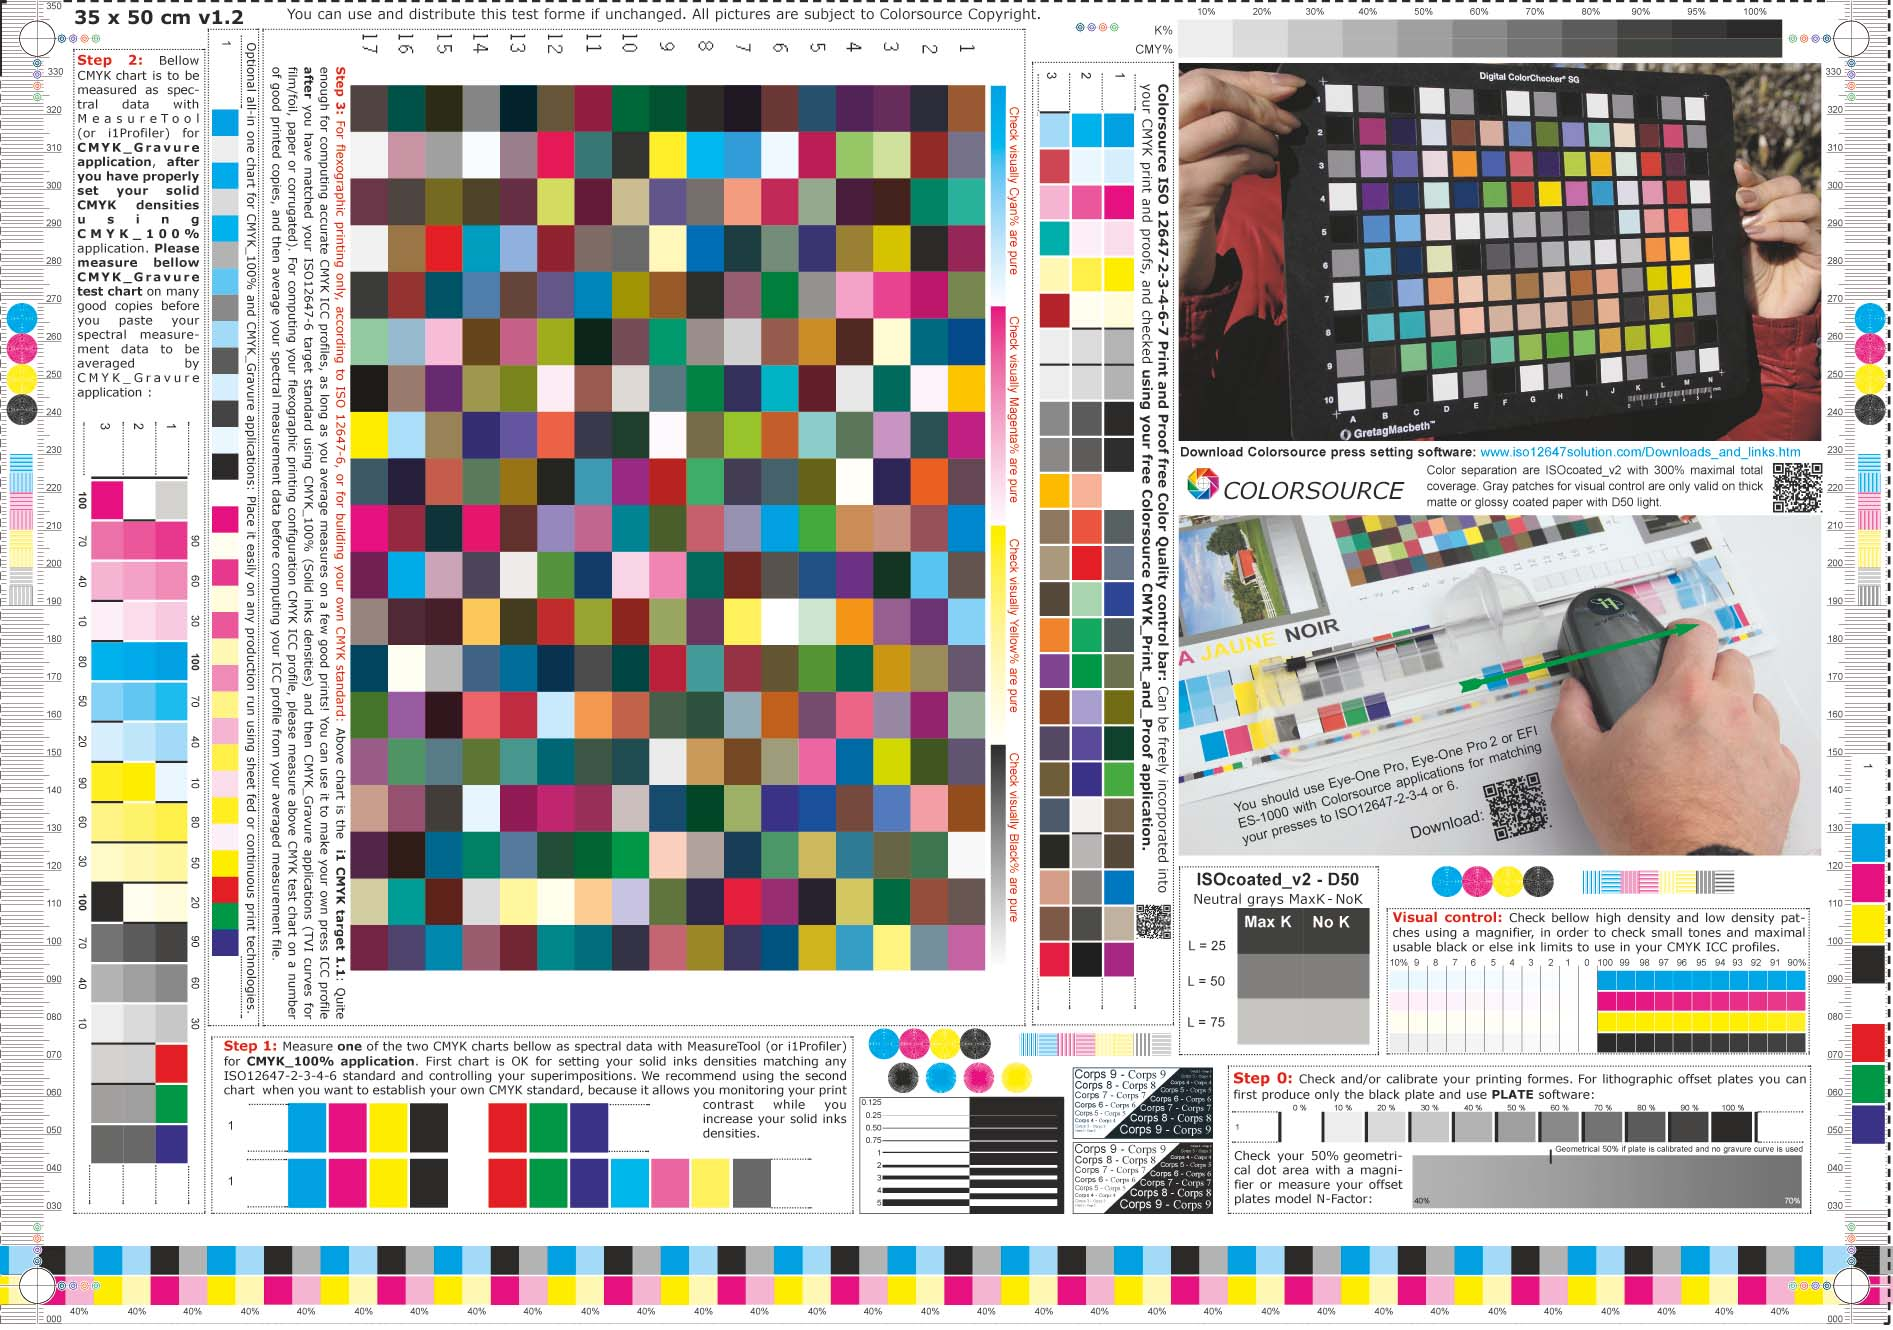 Colorsource free CMYK test print forms